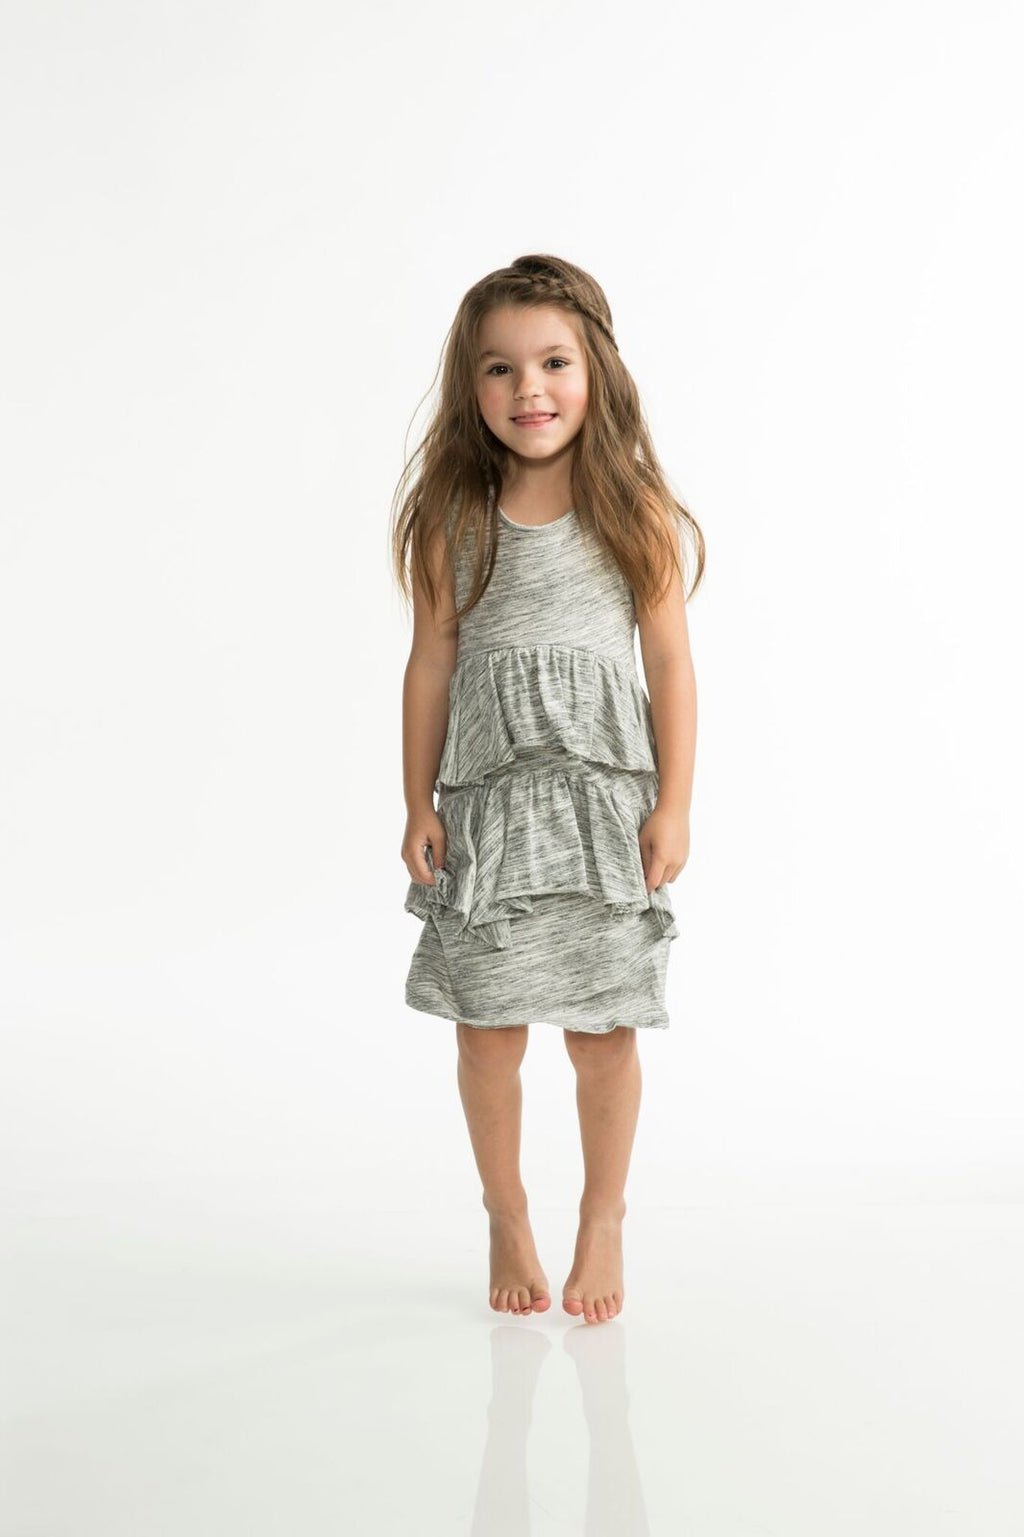 Joah Love Lani Soft Marble Jersey Two Tiered Dress  Grey and white marble jersey tank dress with tiered ruffles  Made in the USA  Children's, Girls, Toddler girls, Dresses, Joah Love